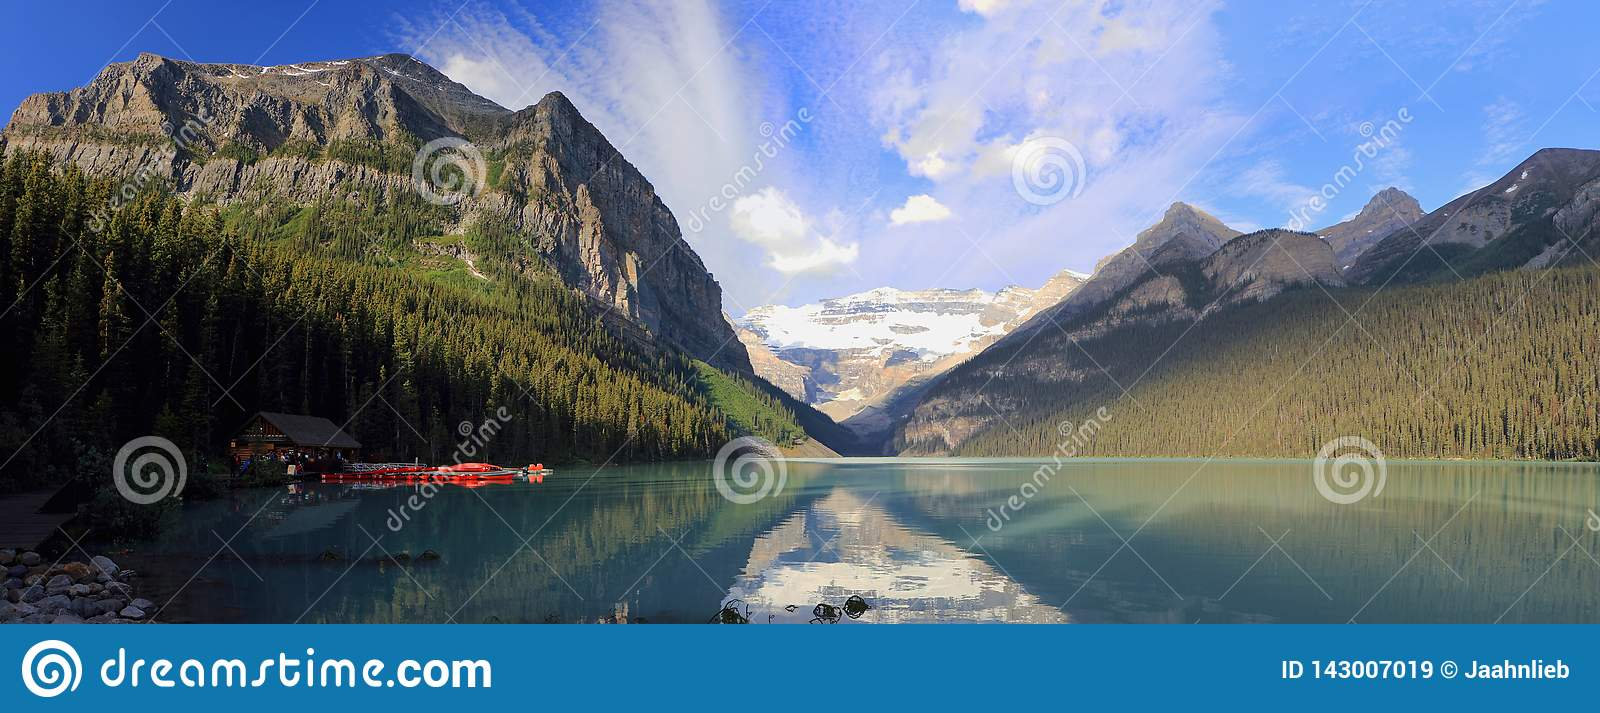 Peaceful Lake Louise and Victoria Glacier in Morning Light, Banff National Park, Alberta, Panorama